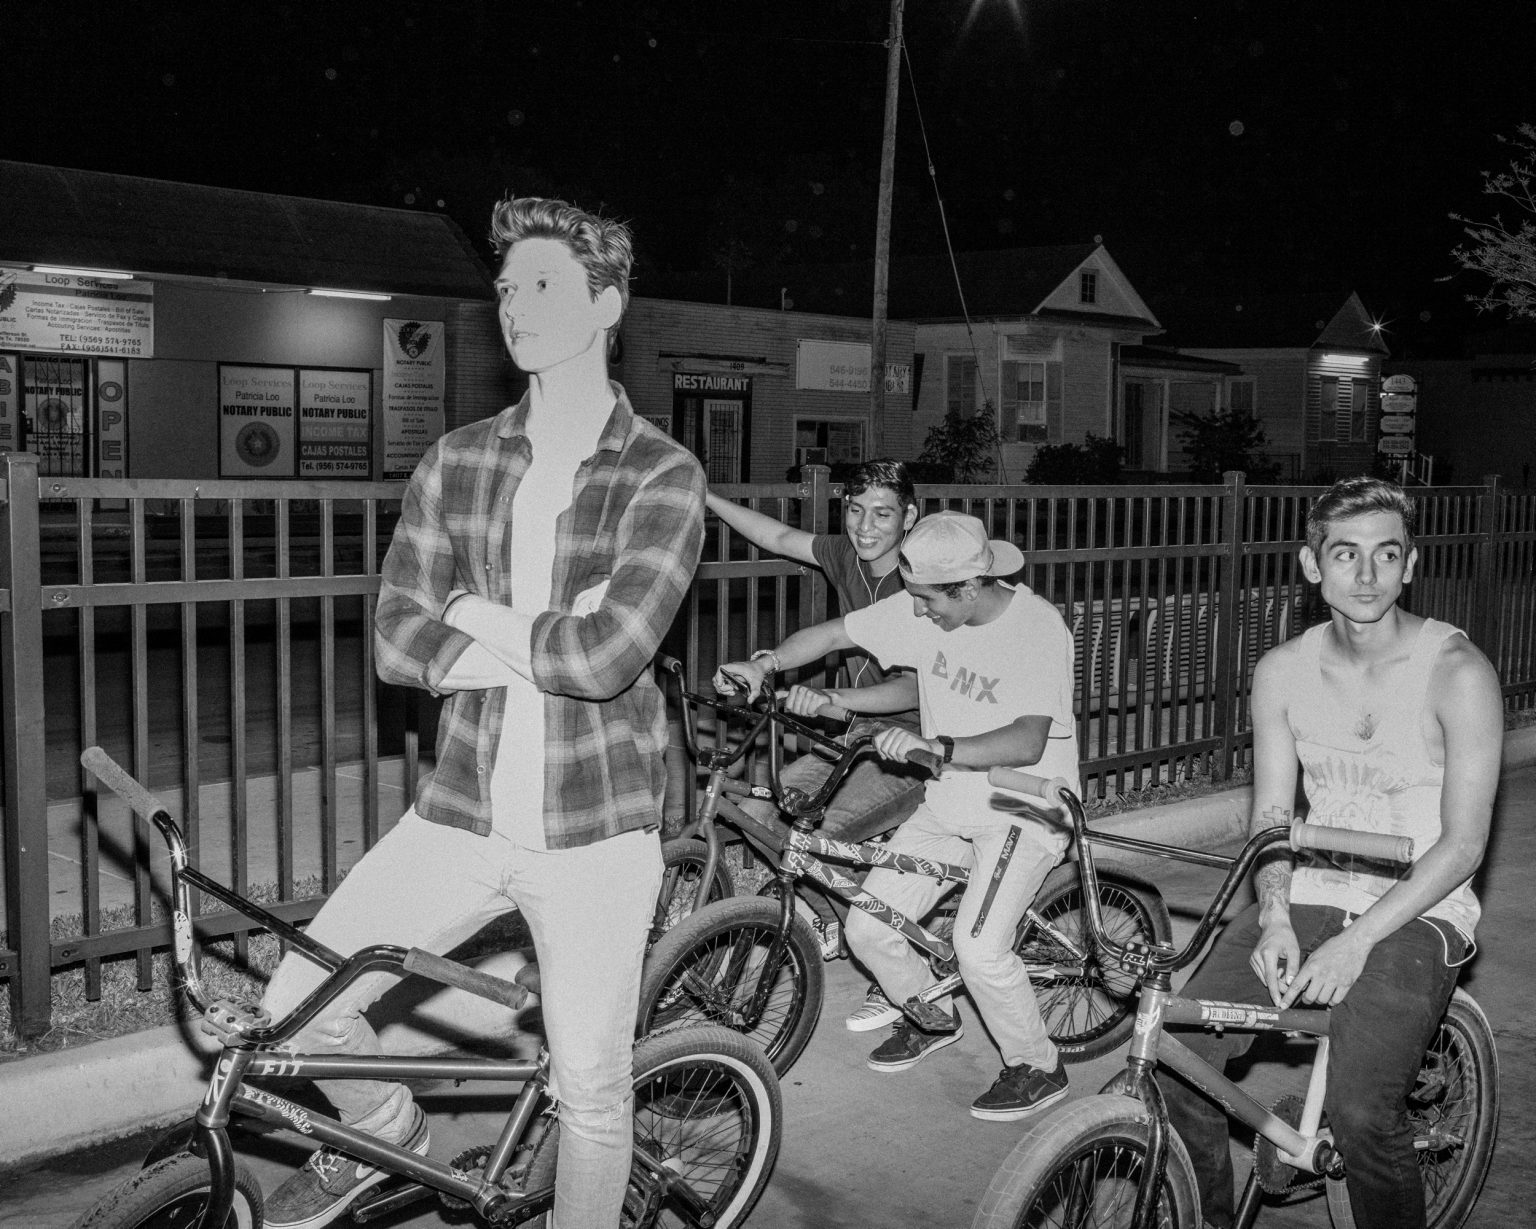 Youth on their BMXs at the bus station. Brownsville, TX. April, 2017.